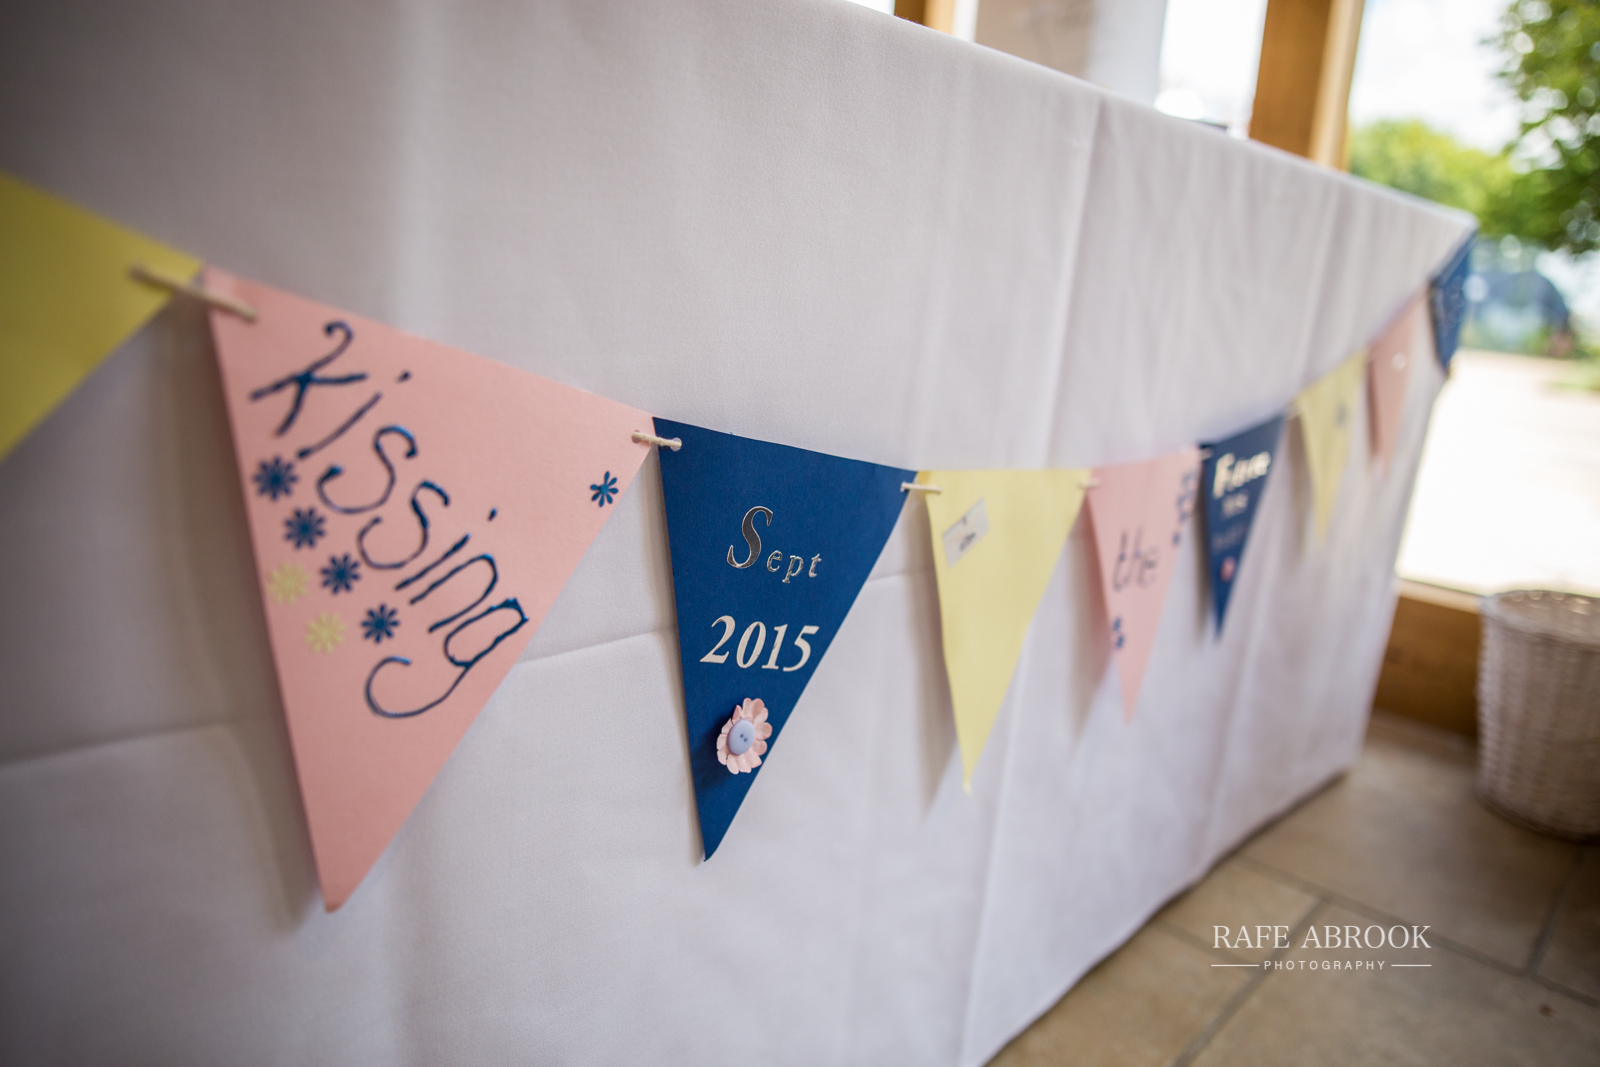 bassmead manor barns st neots cambridgeshire hertfordshire wedding photographer-1019.jpg